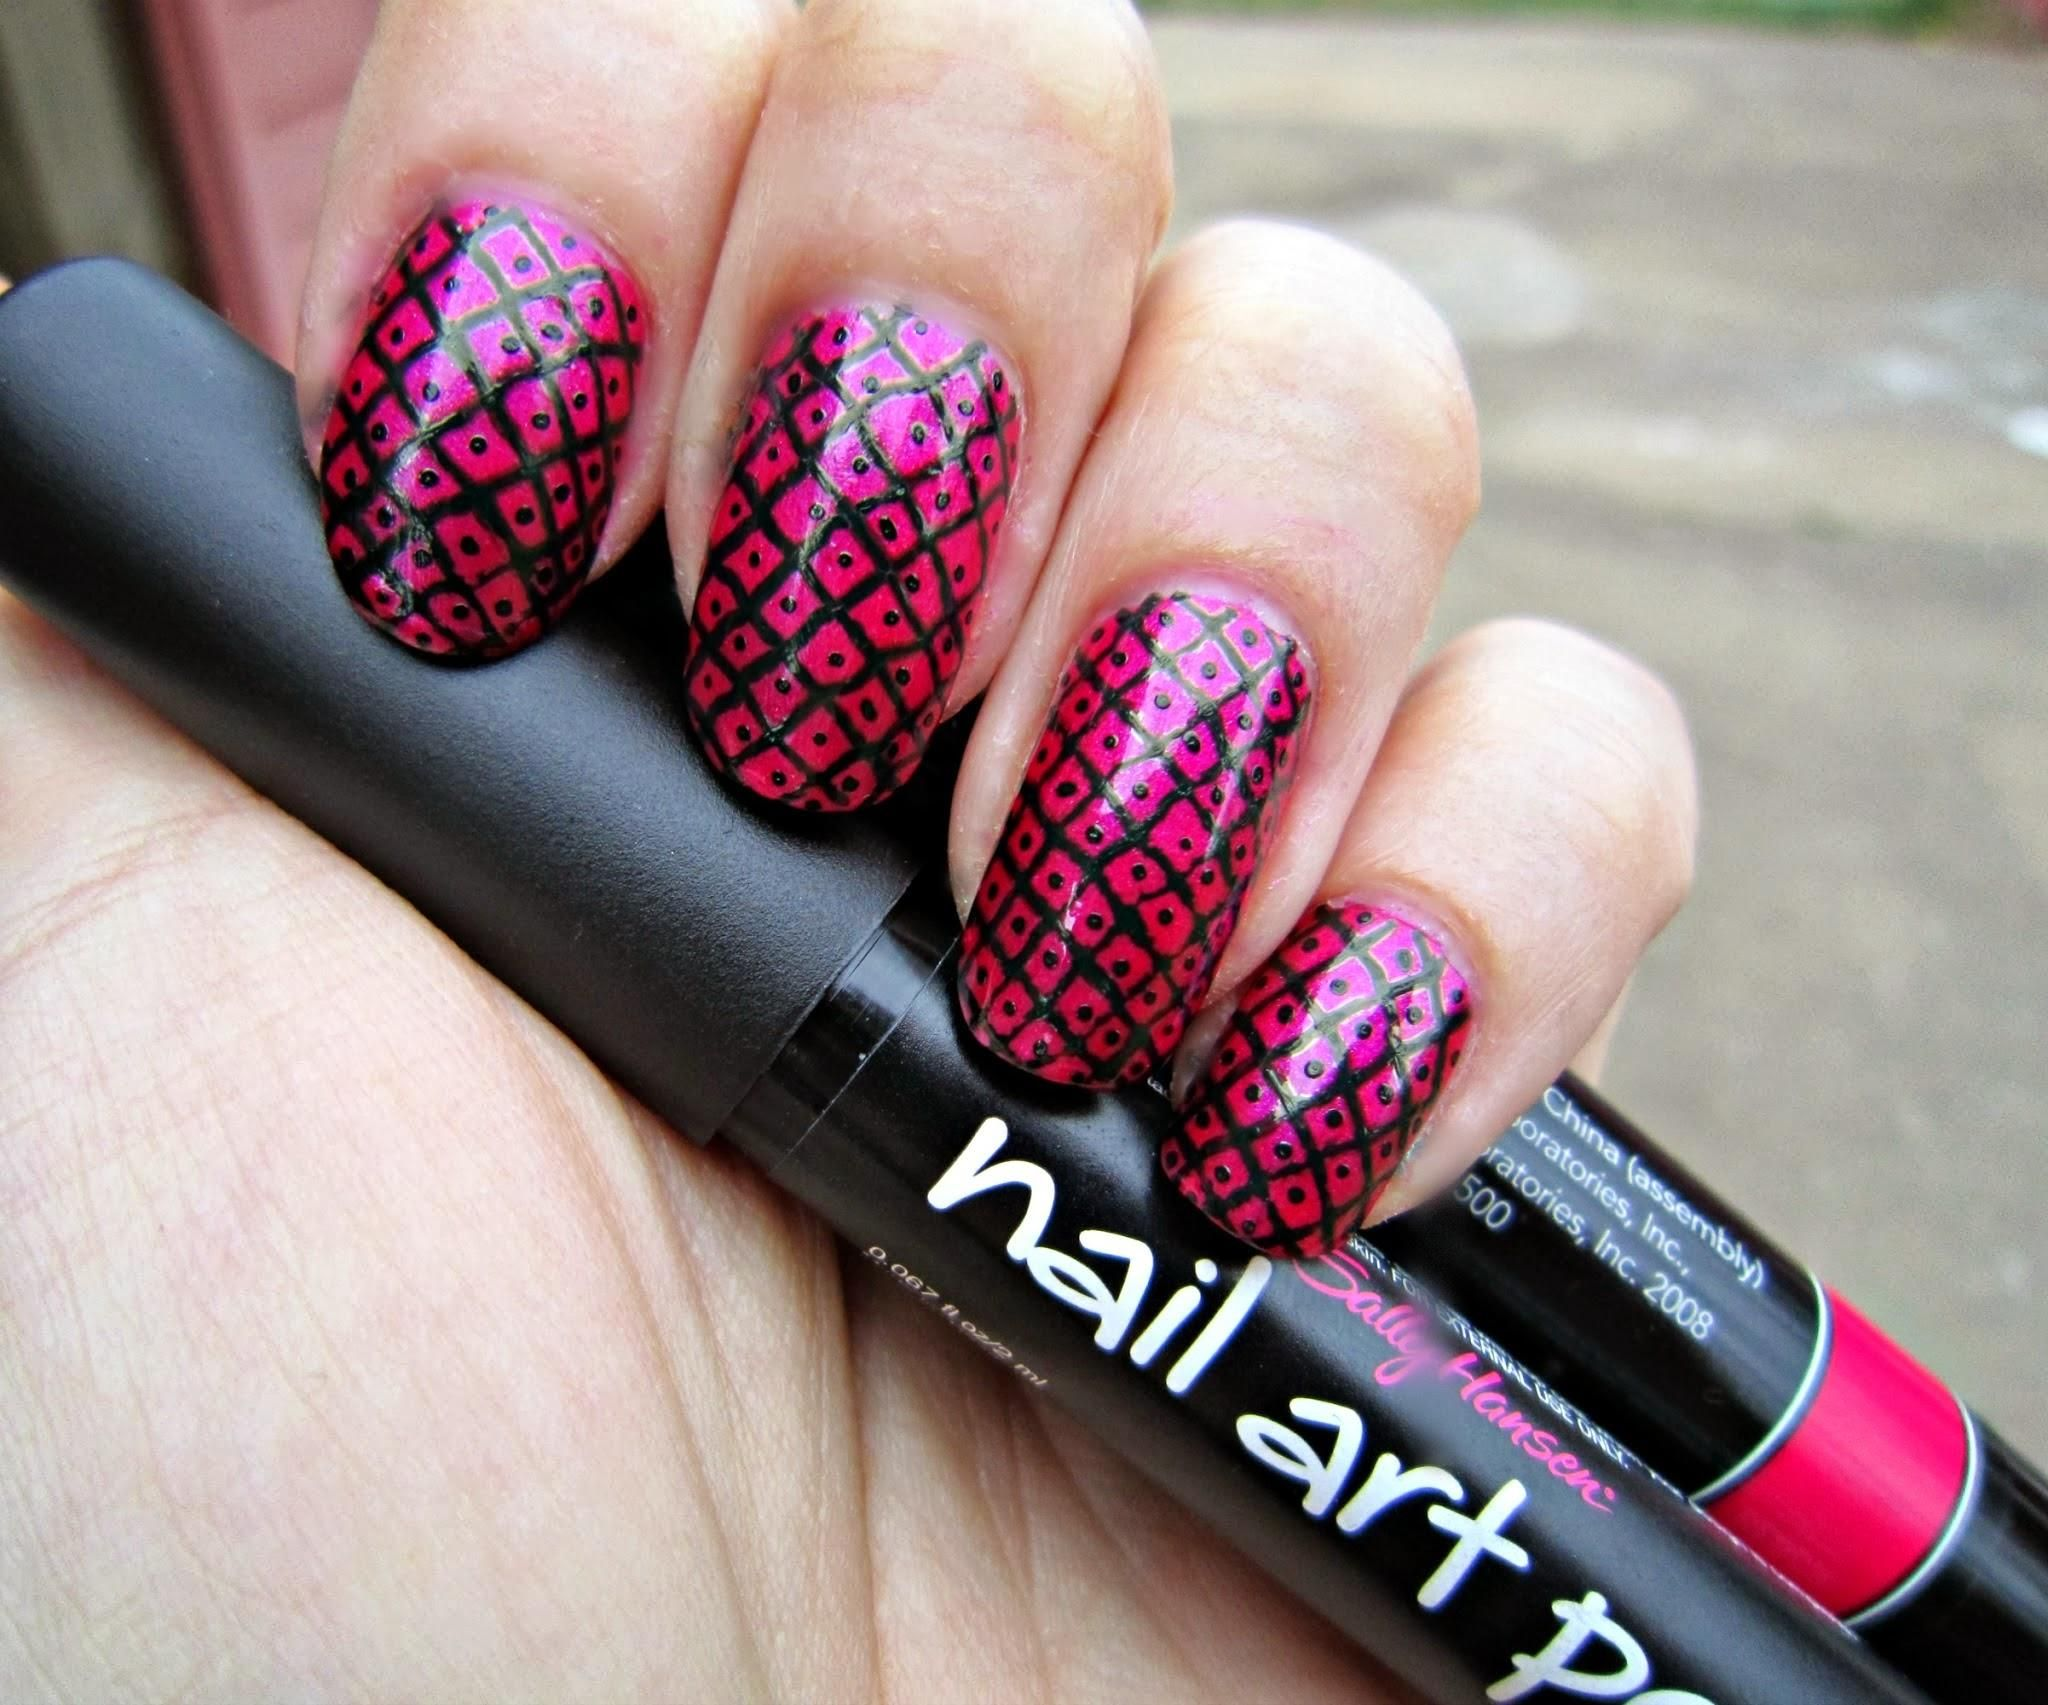 Sally Hansen Nail Art Pen Designs ... | Nail Designs | Pinterest ...